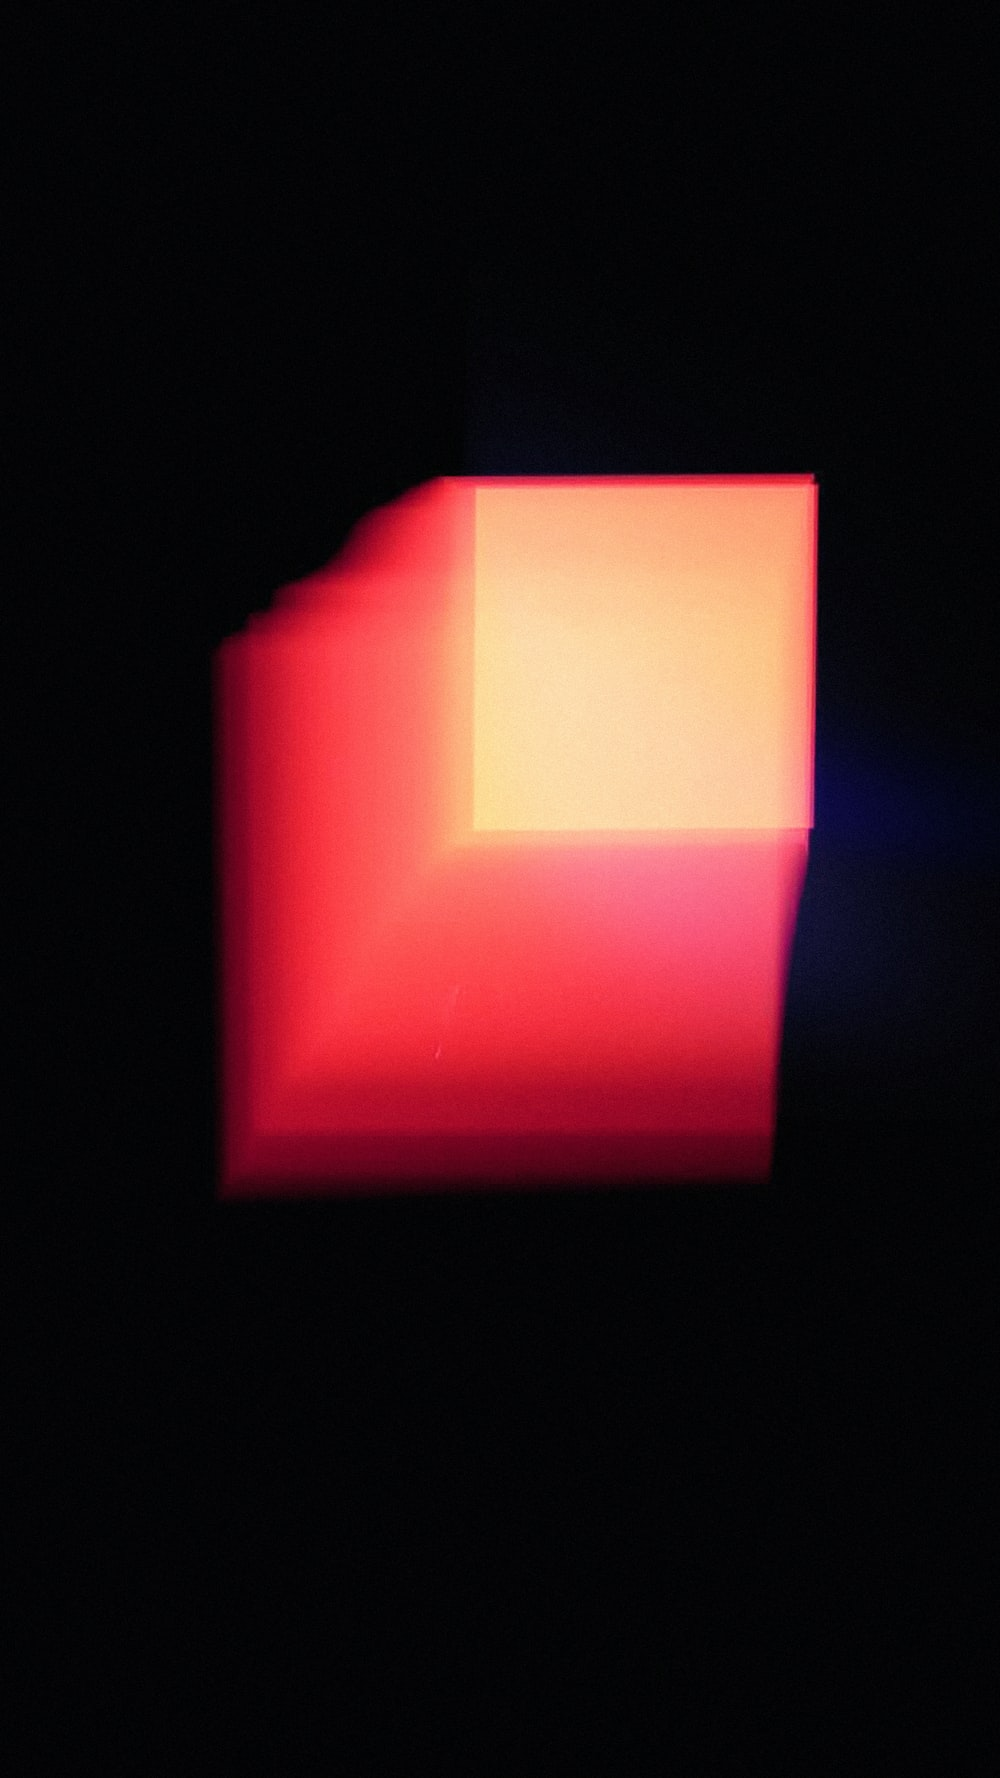 red and yellow square shape light